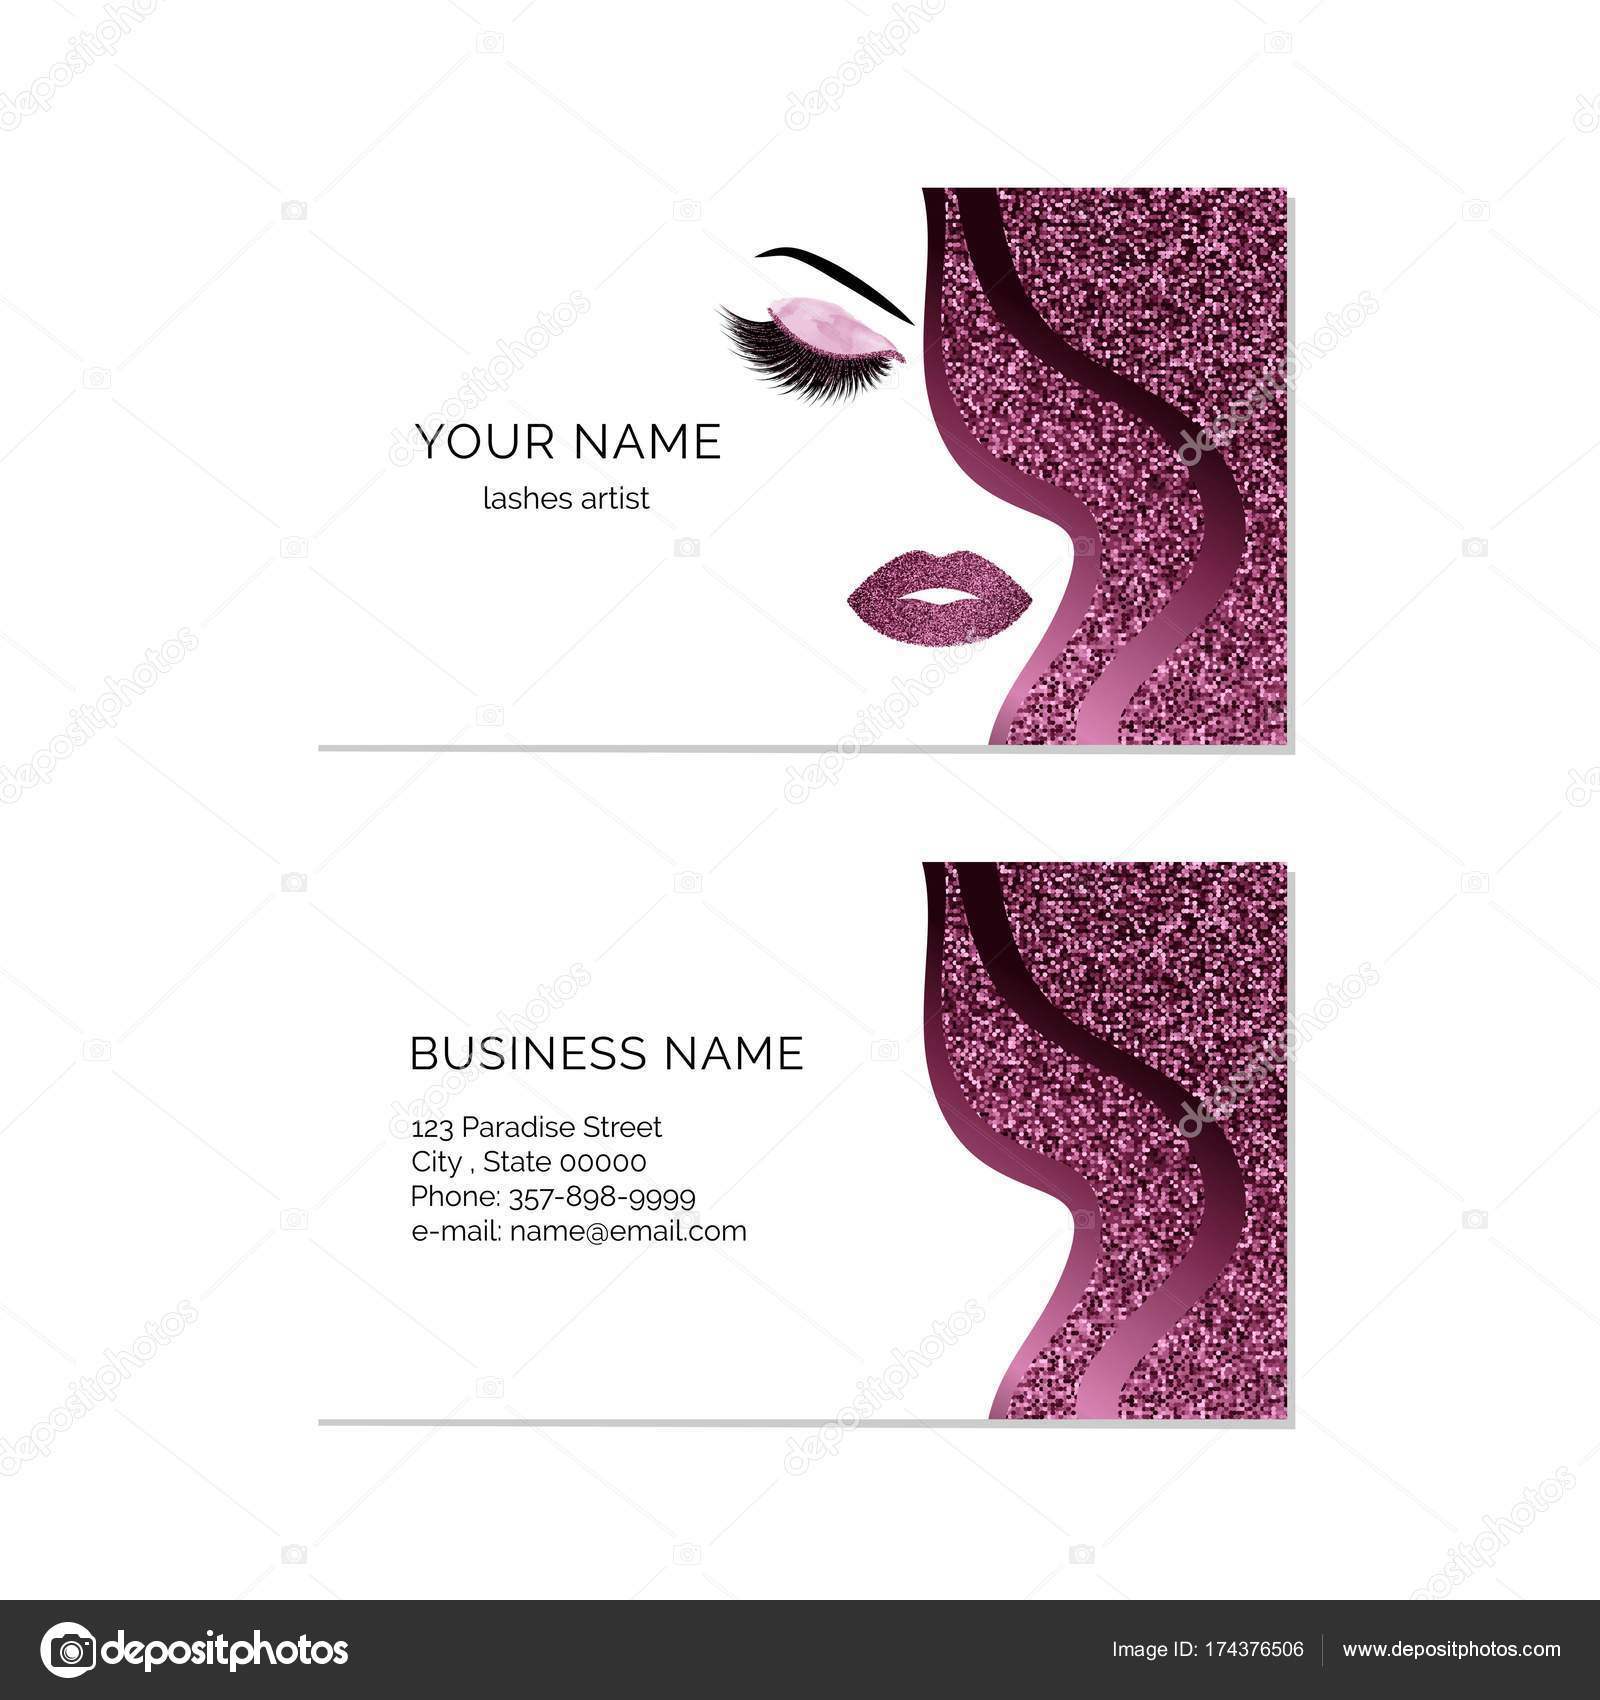 110+ customizable design templates for makeup artist business card.